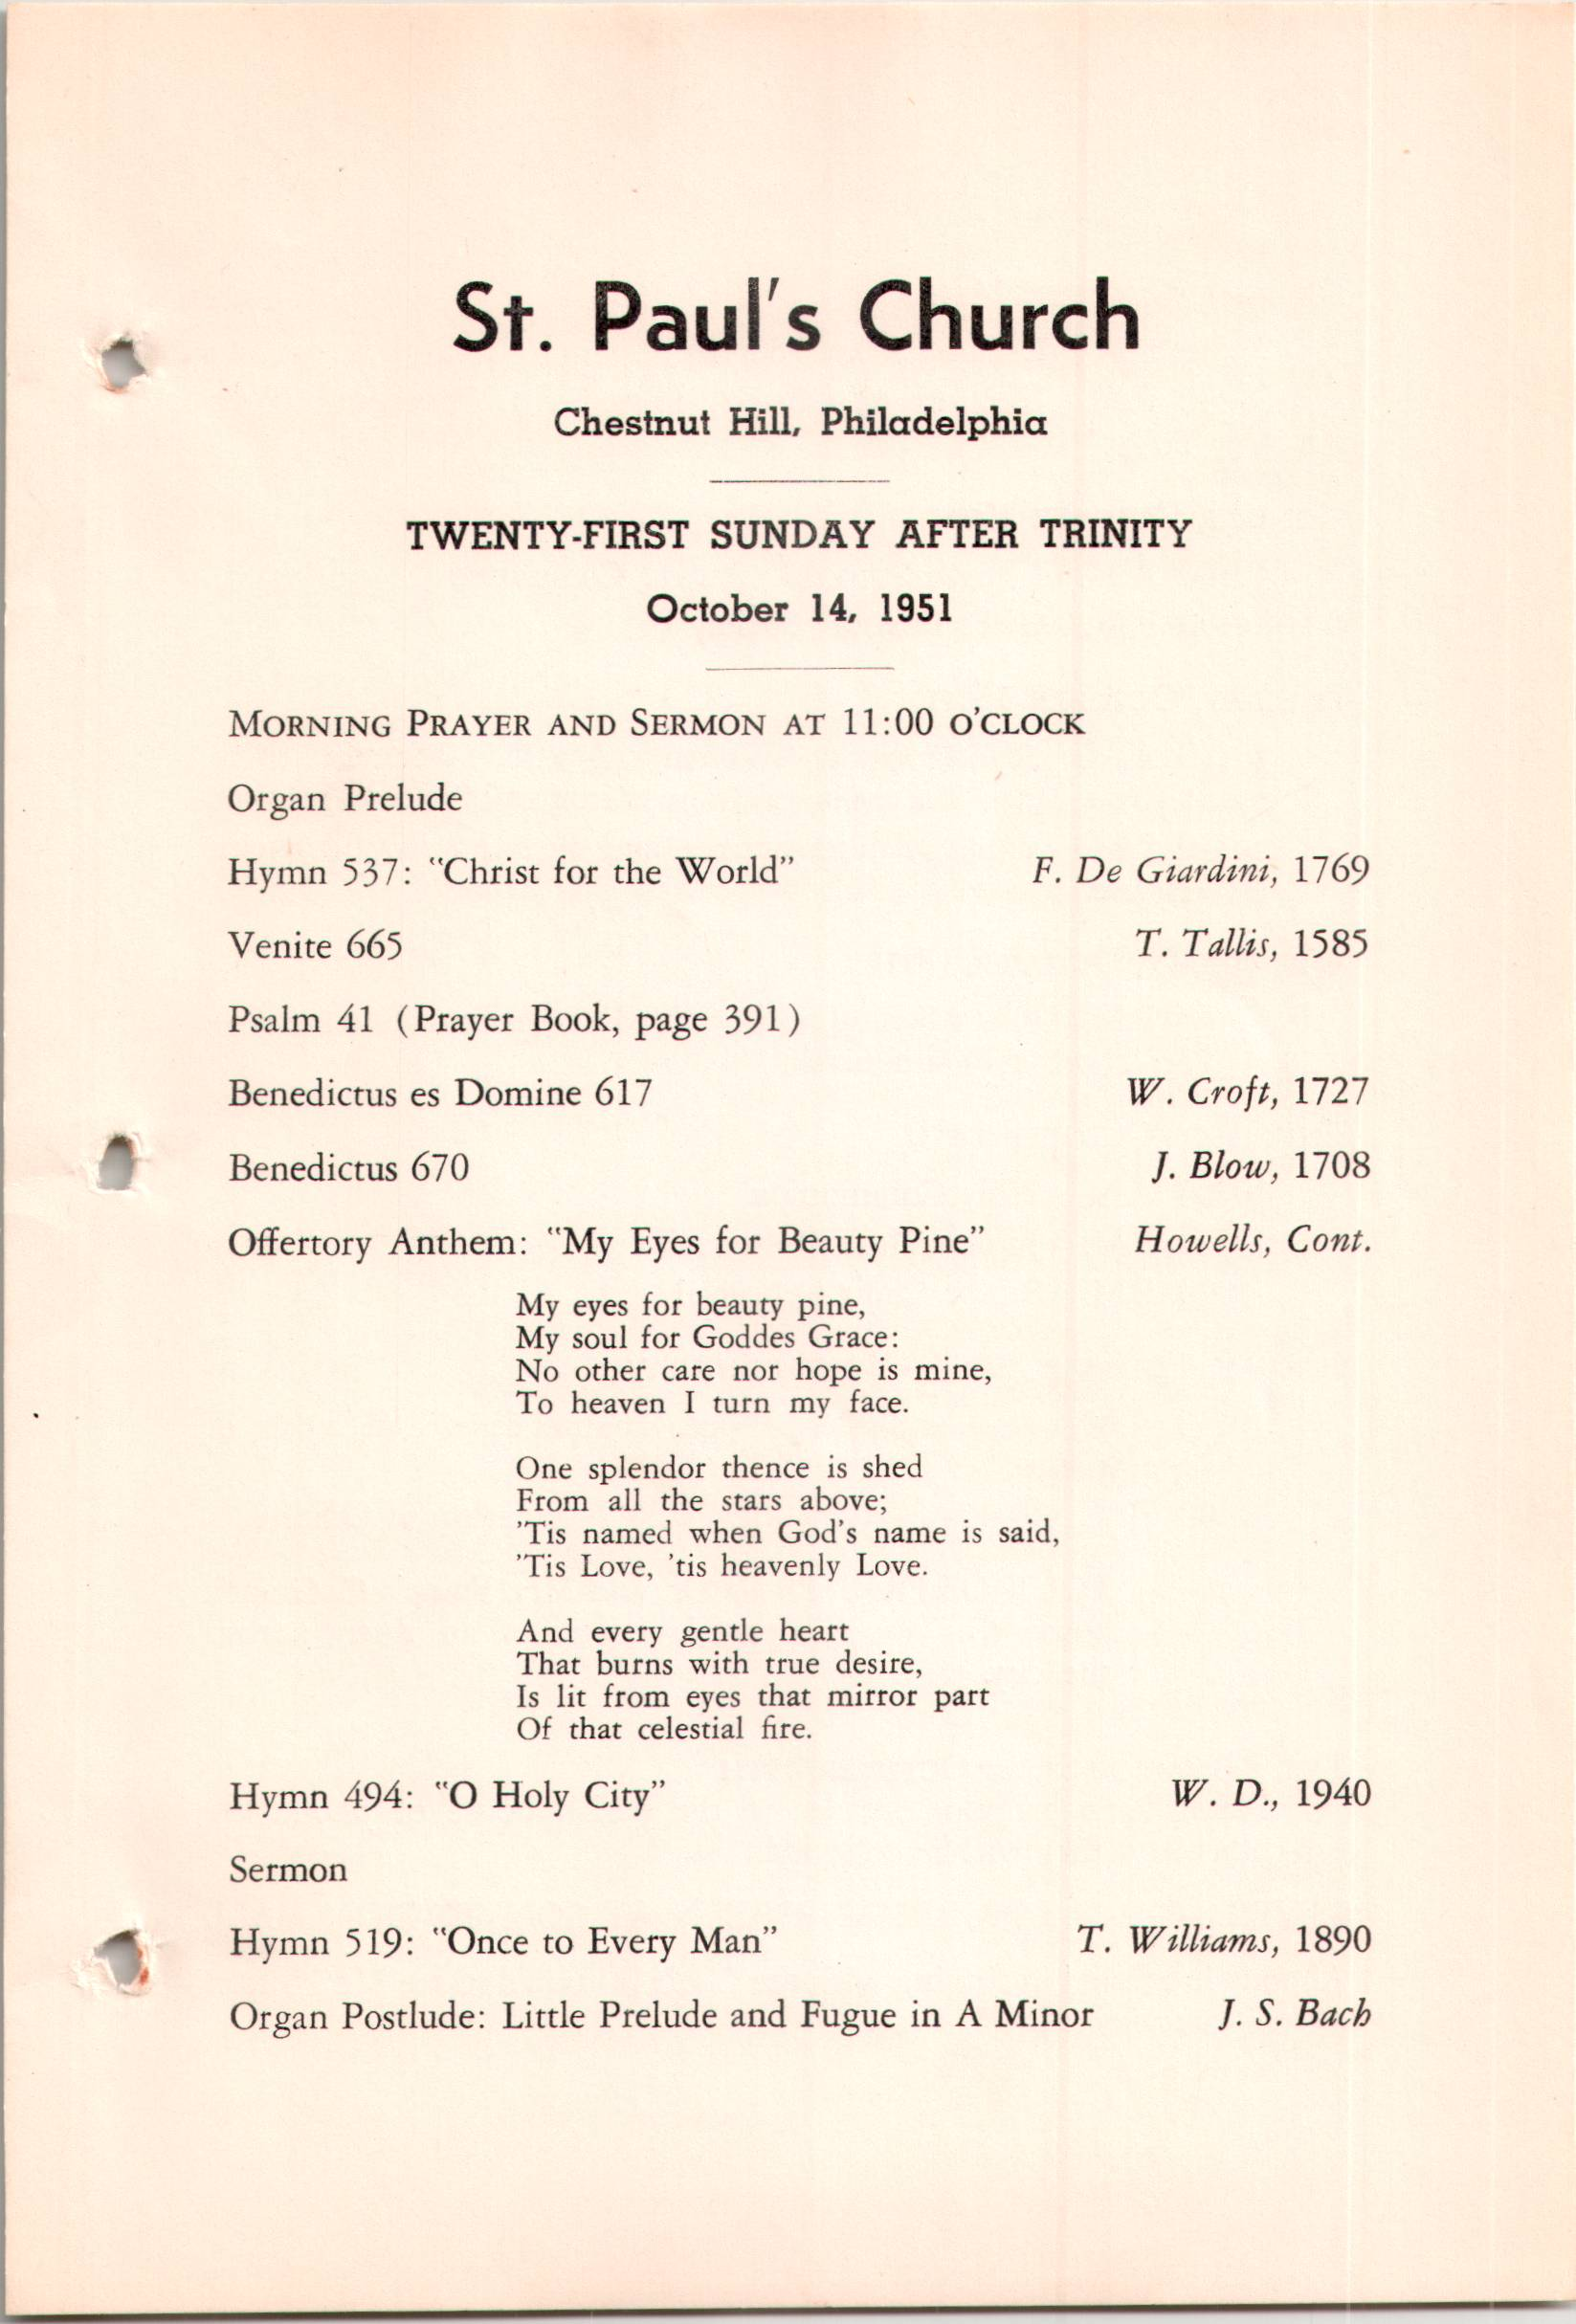 Service Leaflet for the Twenty-First Sunday after Trinity at St  Paul's